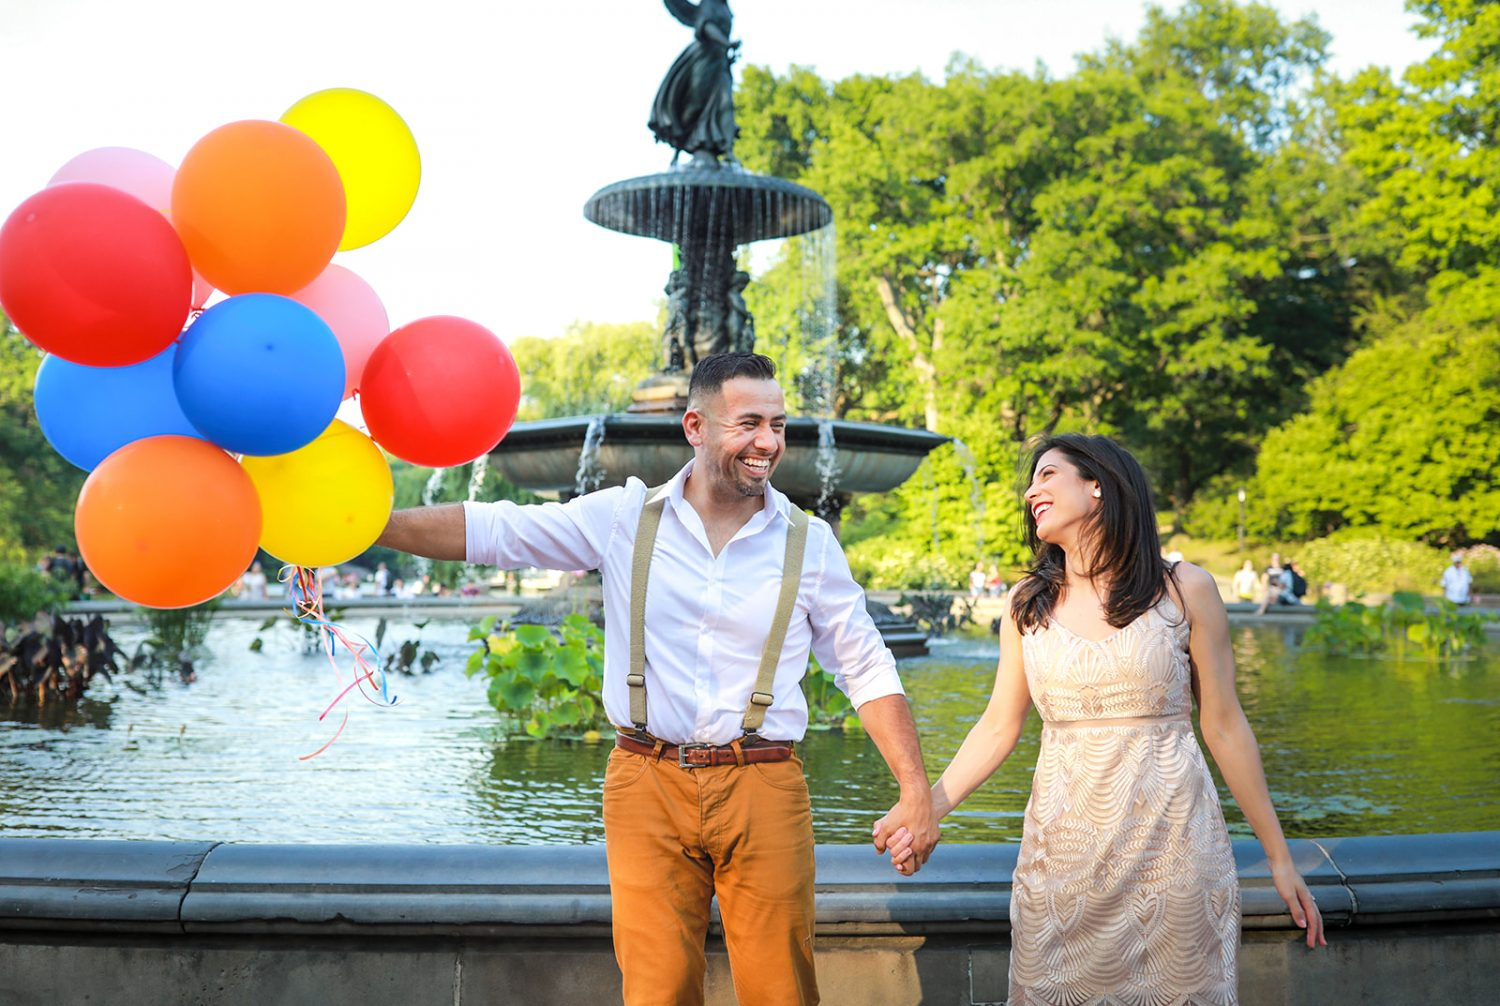 Couple holding colorful balloons for photoshoot in Central Park